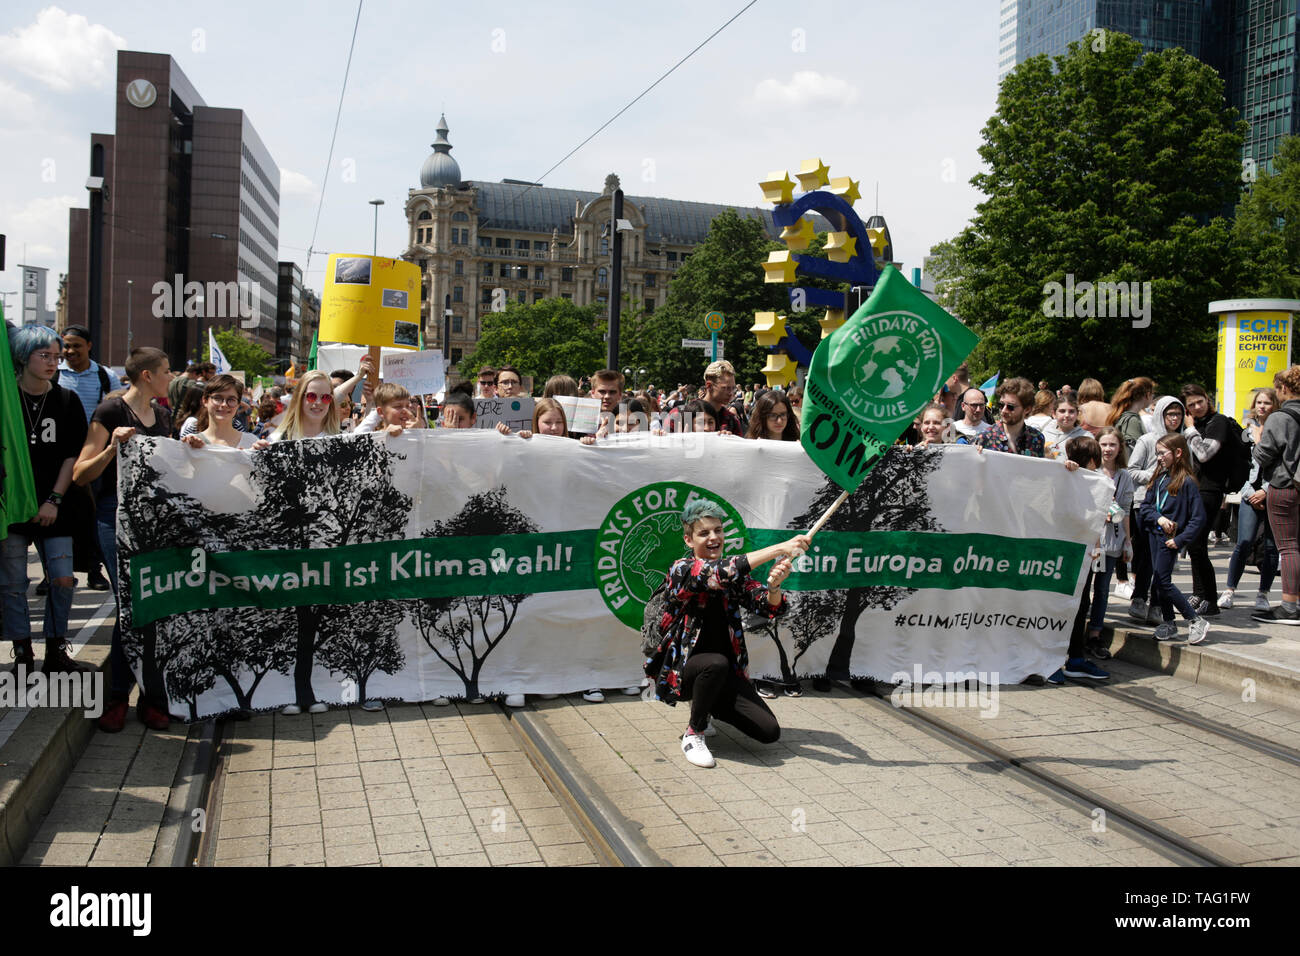 The people at the banner at the front of the march pose for a picture. The large Euro sign can be seen in the background. Around 4,500 young people marched through Frankfurt to the European Central Bank, to protest against the climate change and for the introduction of measurements against it. The protest took place as part of an Europe wide climate strike, two days ahead of the 2019 European elections. (Photo by Michael Debets/Pacific Press - Stock Image